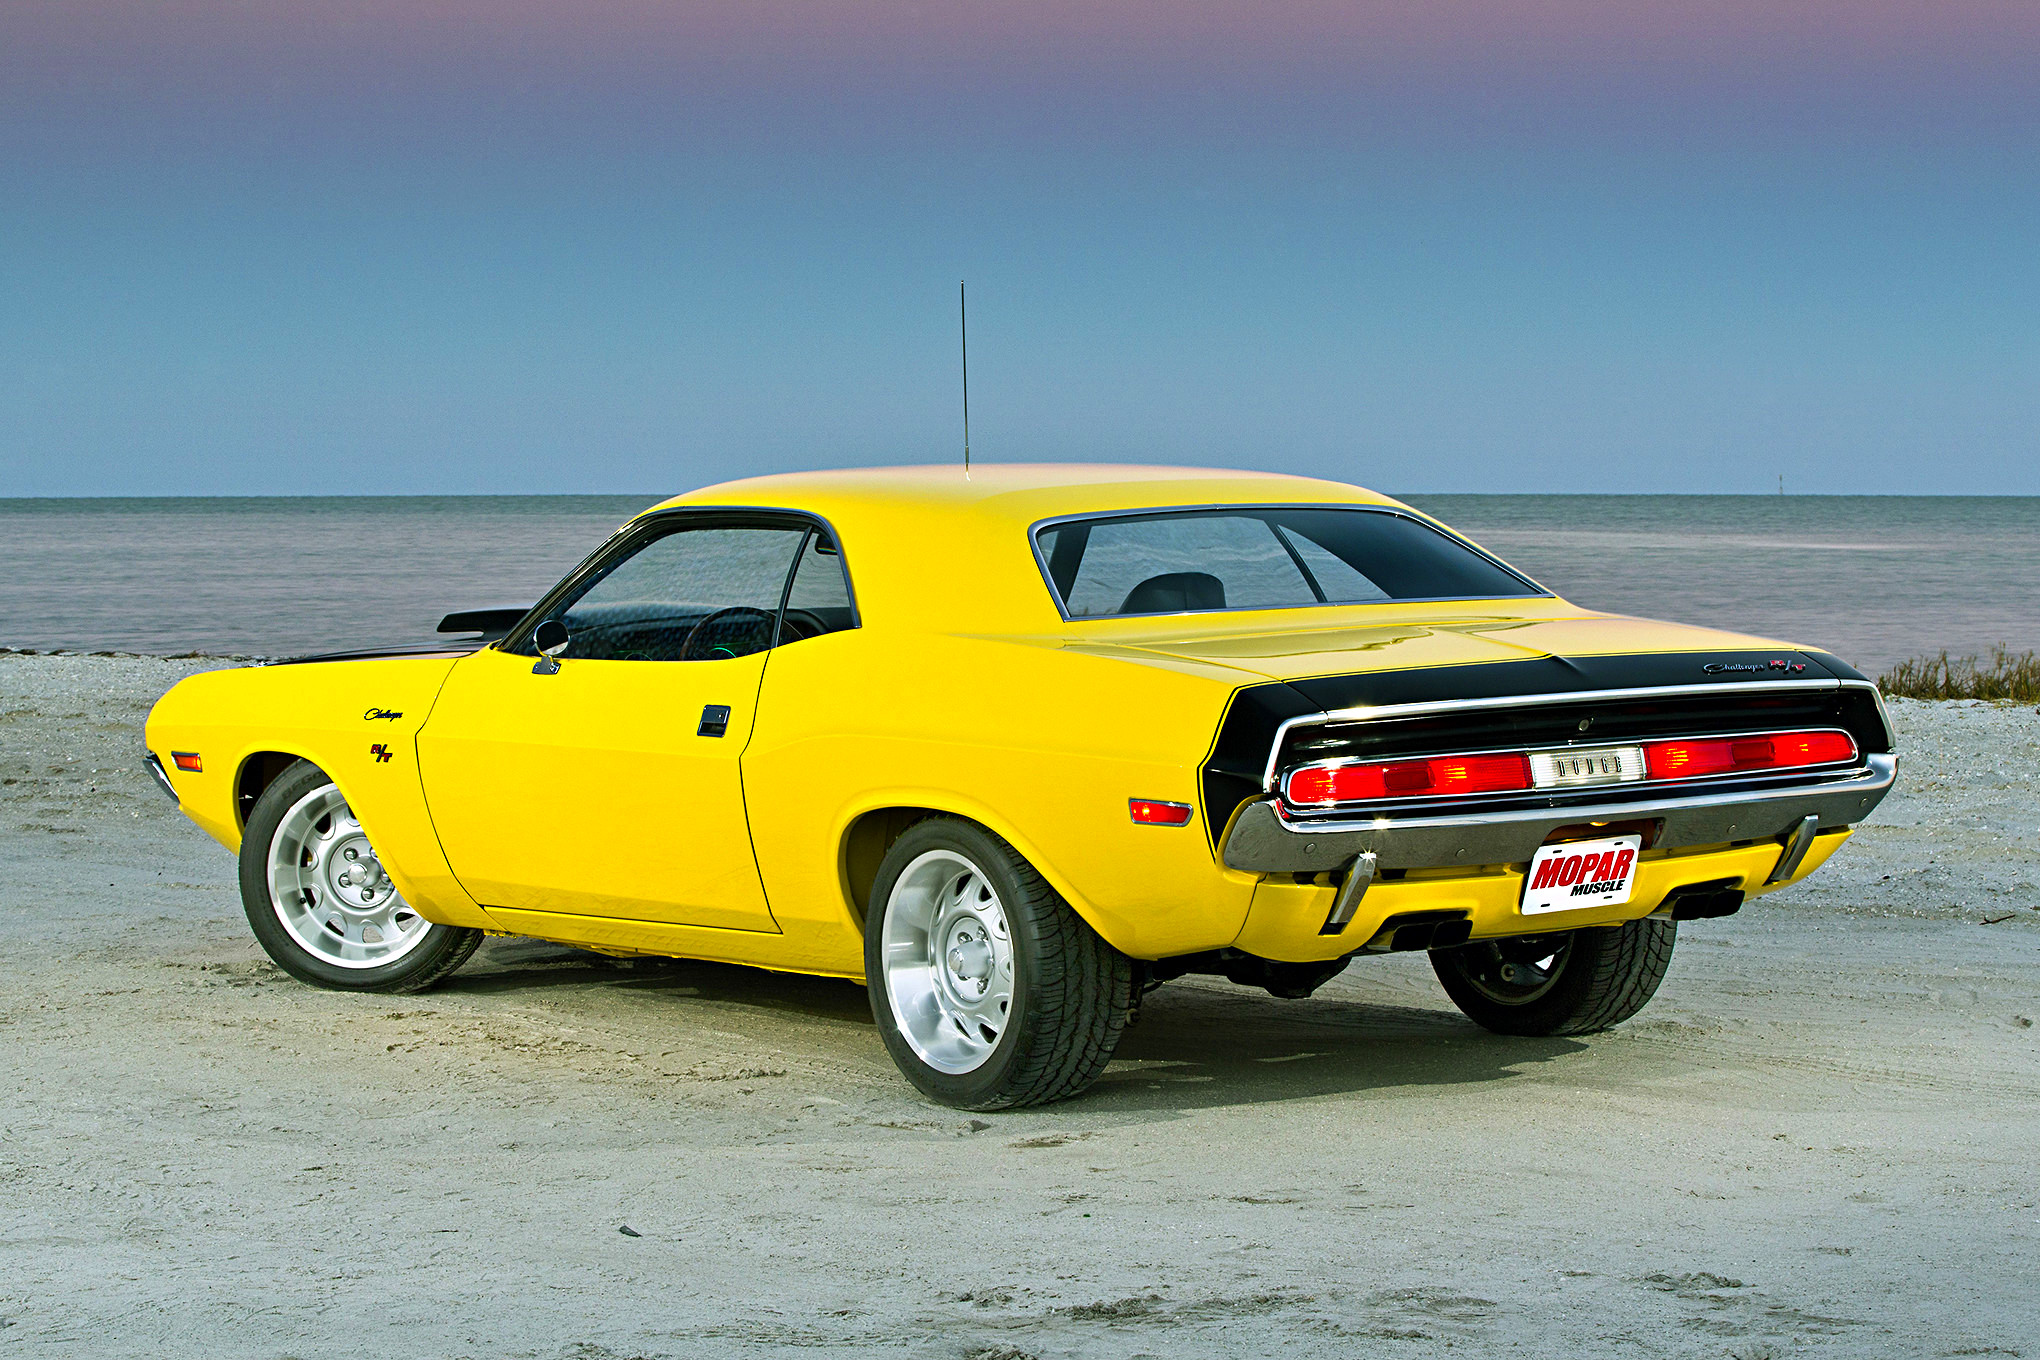 Dodge Challenger Wallpapers Pictures Images HD Wallpapers Download free images and photos [musssic.tk]